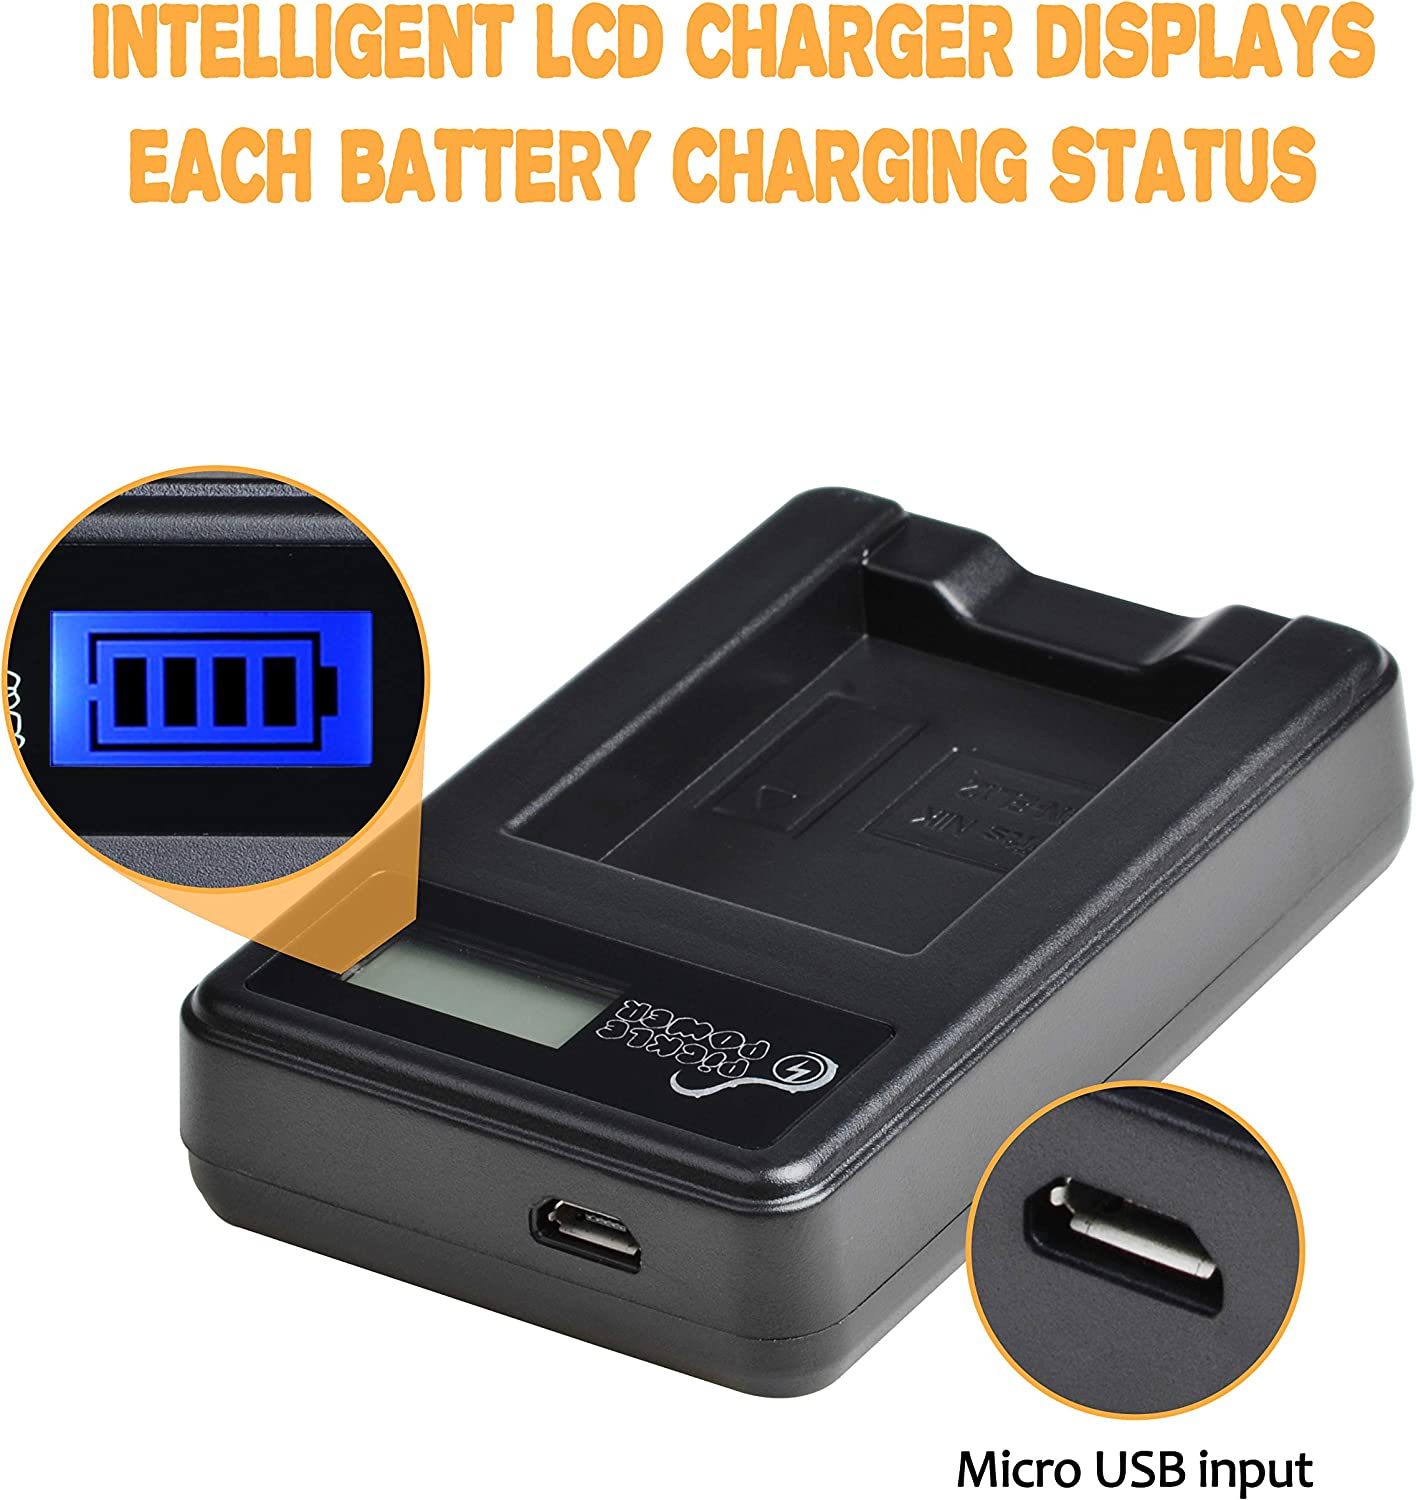 S9500 x2 1400mAh, 3.7V S6100 Camera EN-EL12 Pickle Power S8200 S6200 S9400 AW100 S9700 S8200 S6300 ENEL12 Batteries and Slim LCD USB Charger Compatible with Nikon Coolpix AW110